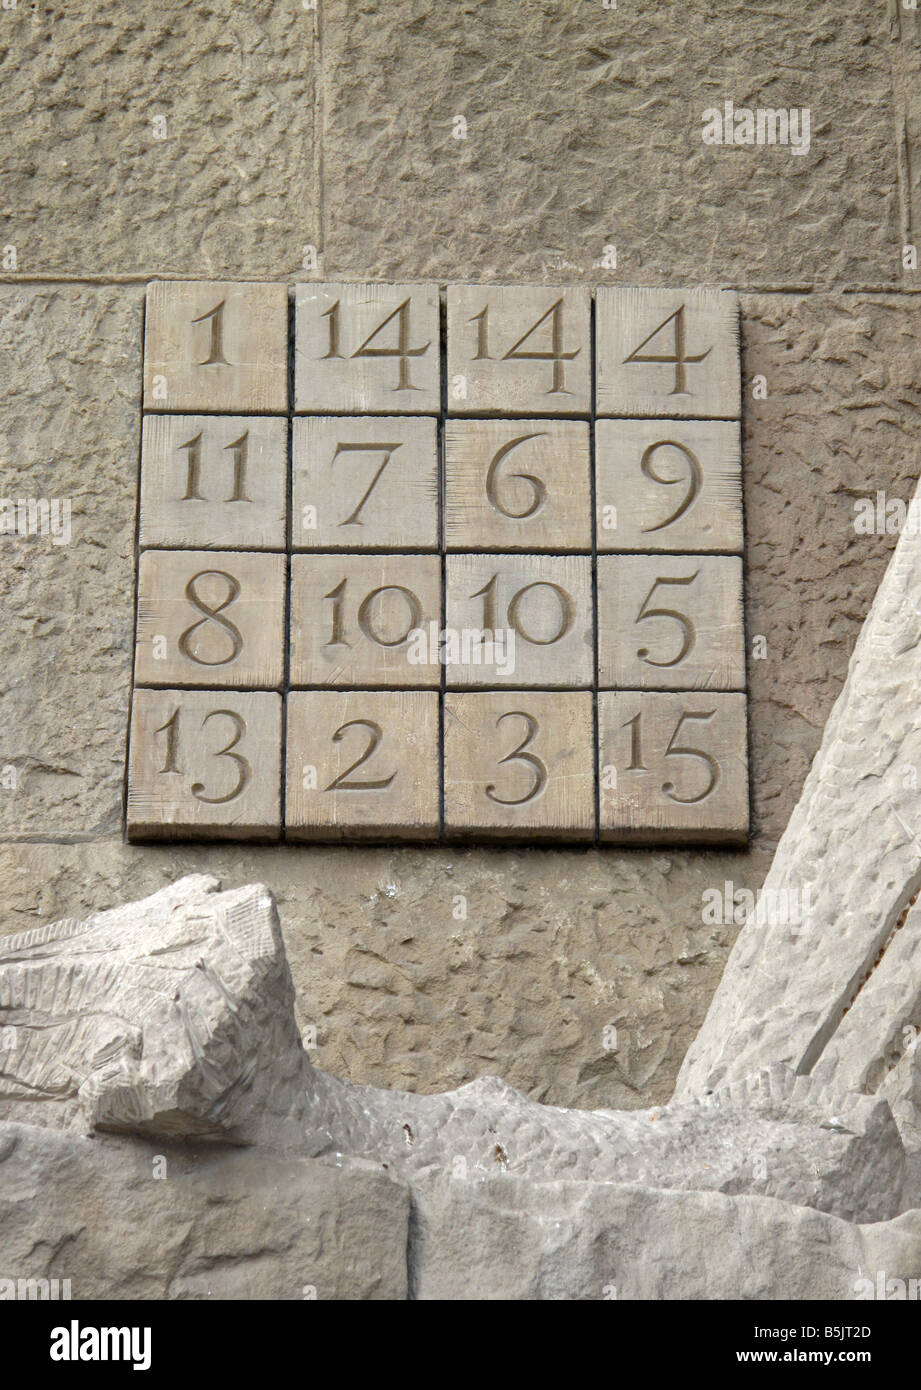 Stone carved cryptogram mysterious numerical code square